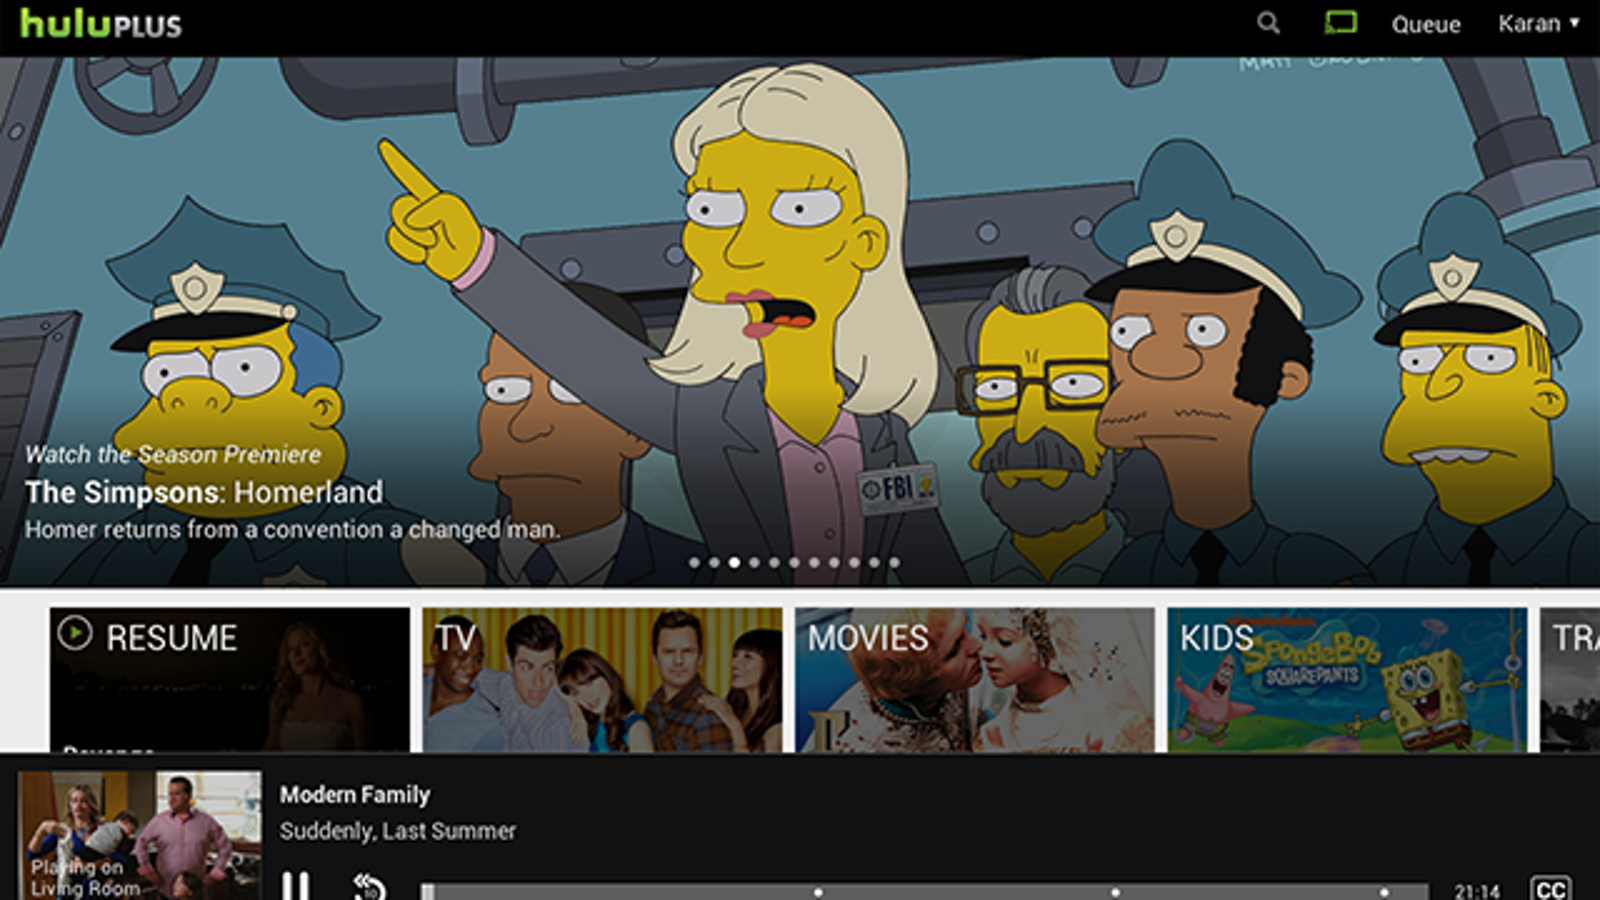 Hulu Plus Adds Support for Chromecast on Android and iOS